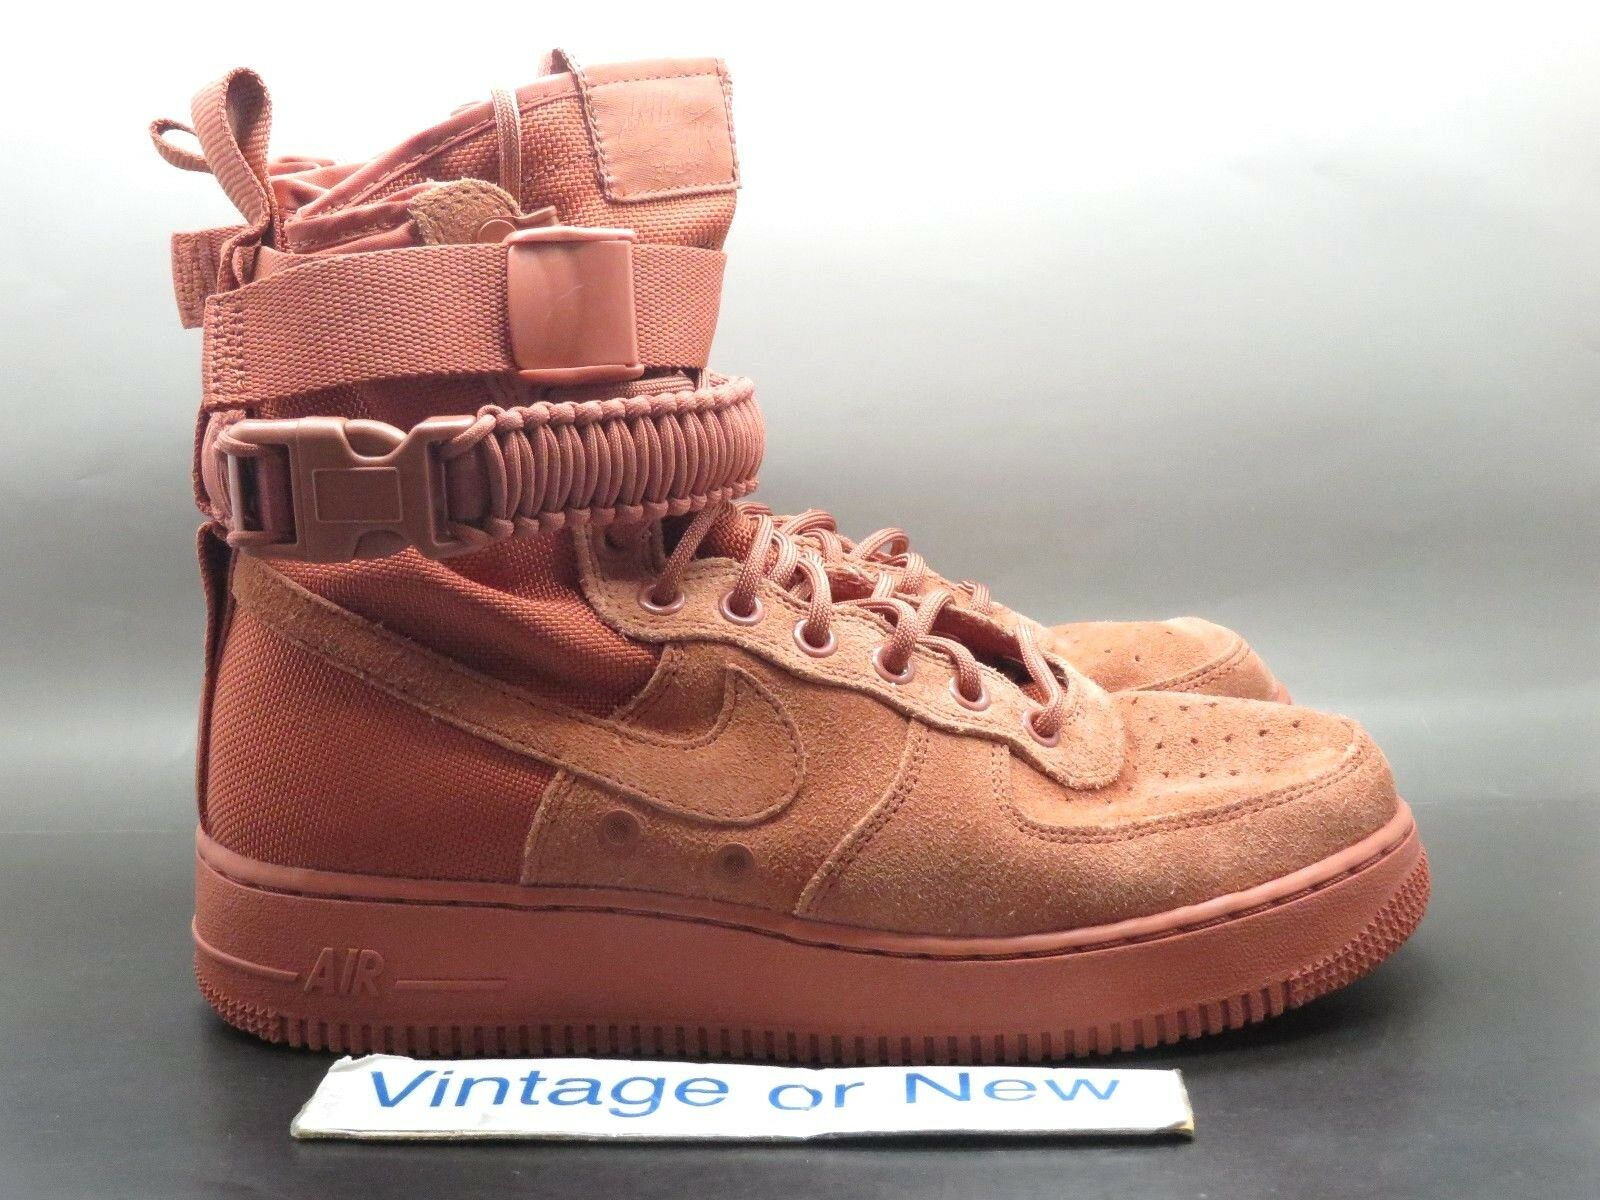 Nike SF AF1 Special Field Air Force 1 High Dusty Peach 2018 Price reduction New shoes for men and women, limited time discount